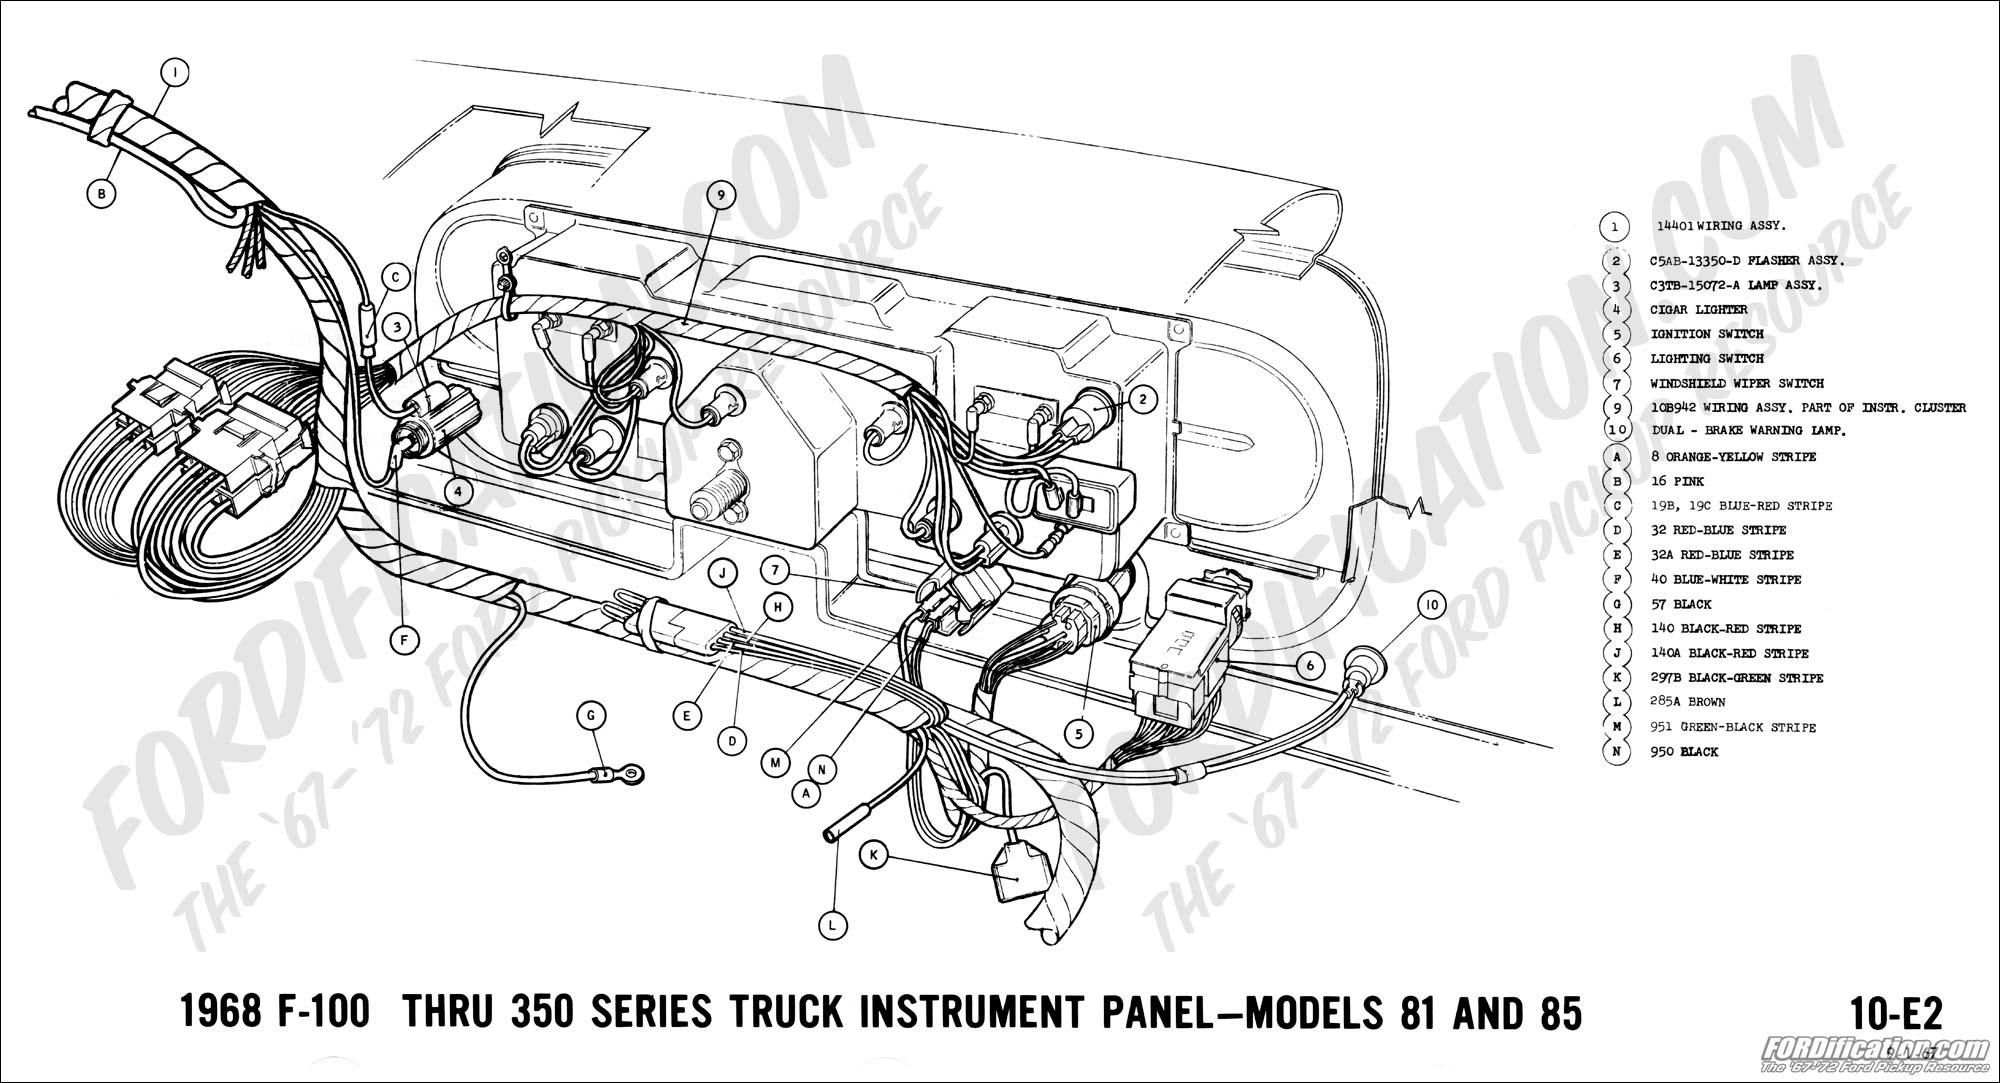 1929 Ford Dashboard Wiring Diagram Key Library F 350 Dash Lights Manual Diagrams Legend 1968 100 Thru